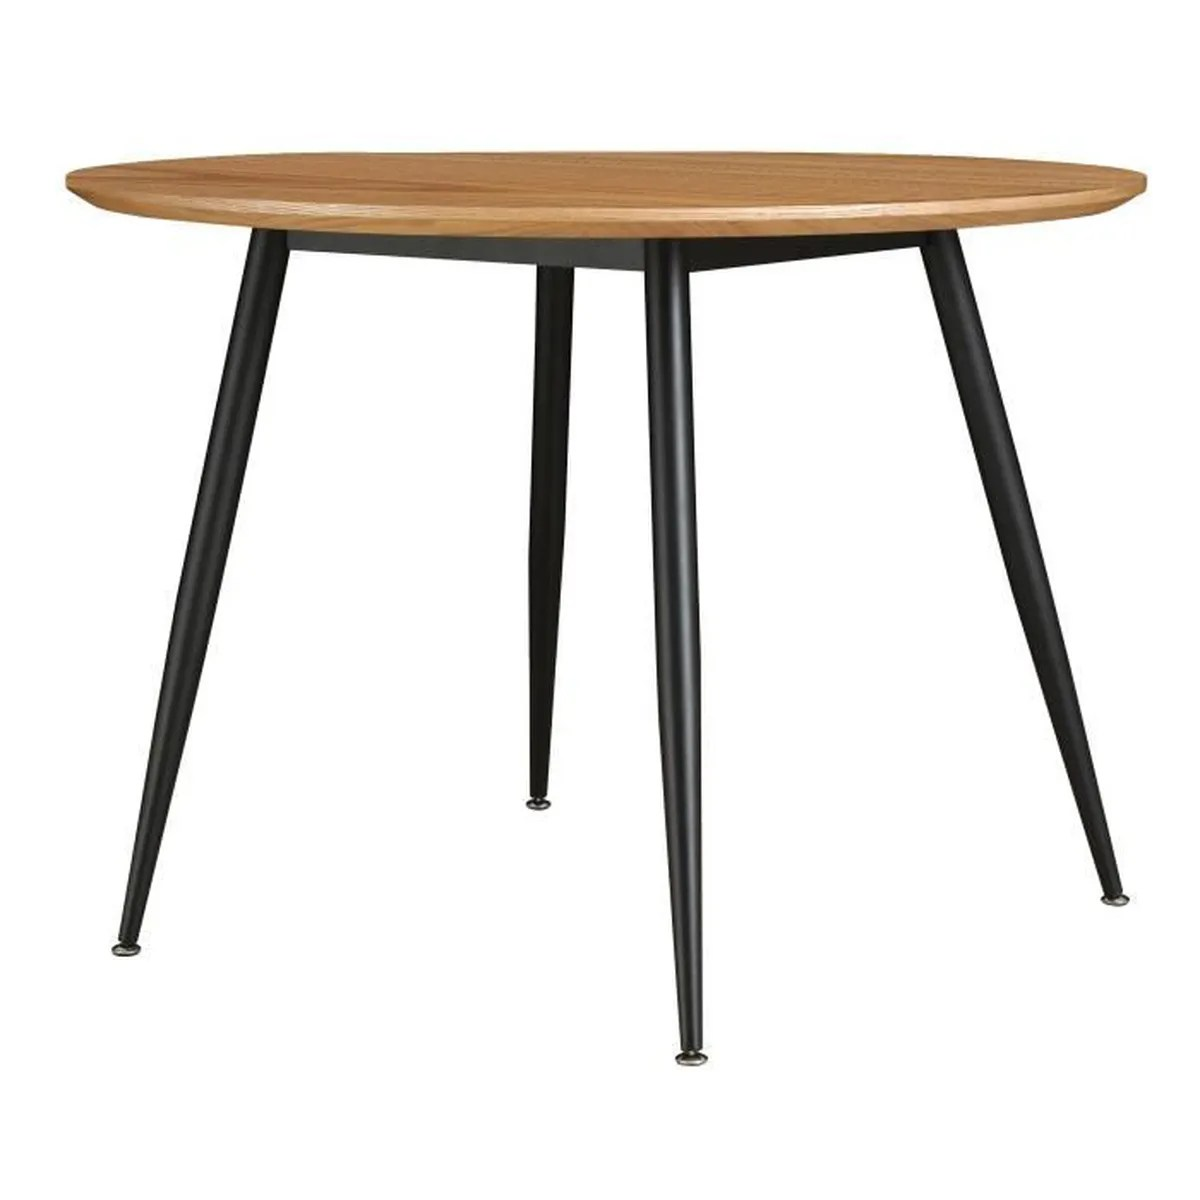 Table Ronde 100 Cm Table Ronde Oulu 100 Cm Bois Clair Achat Vente Table A